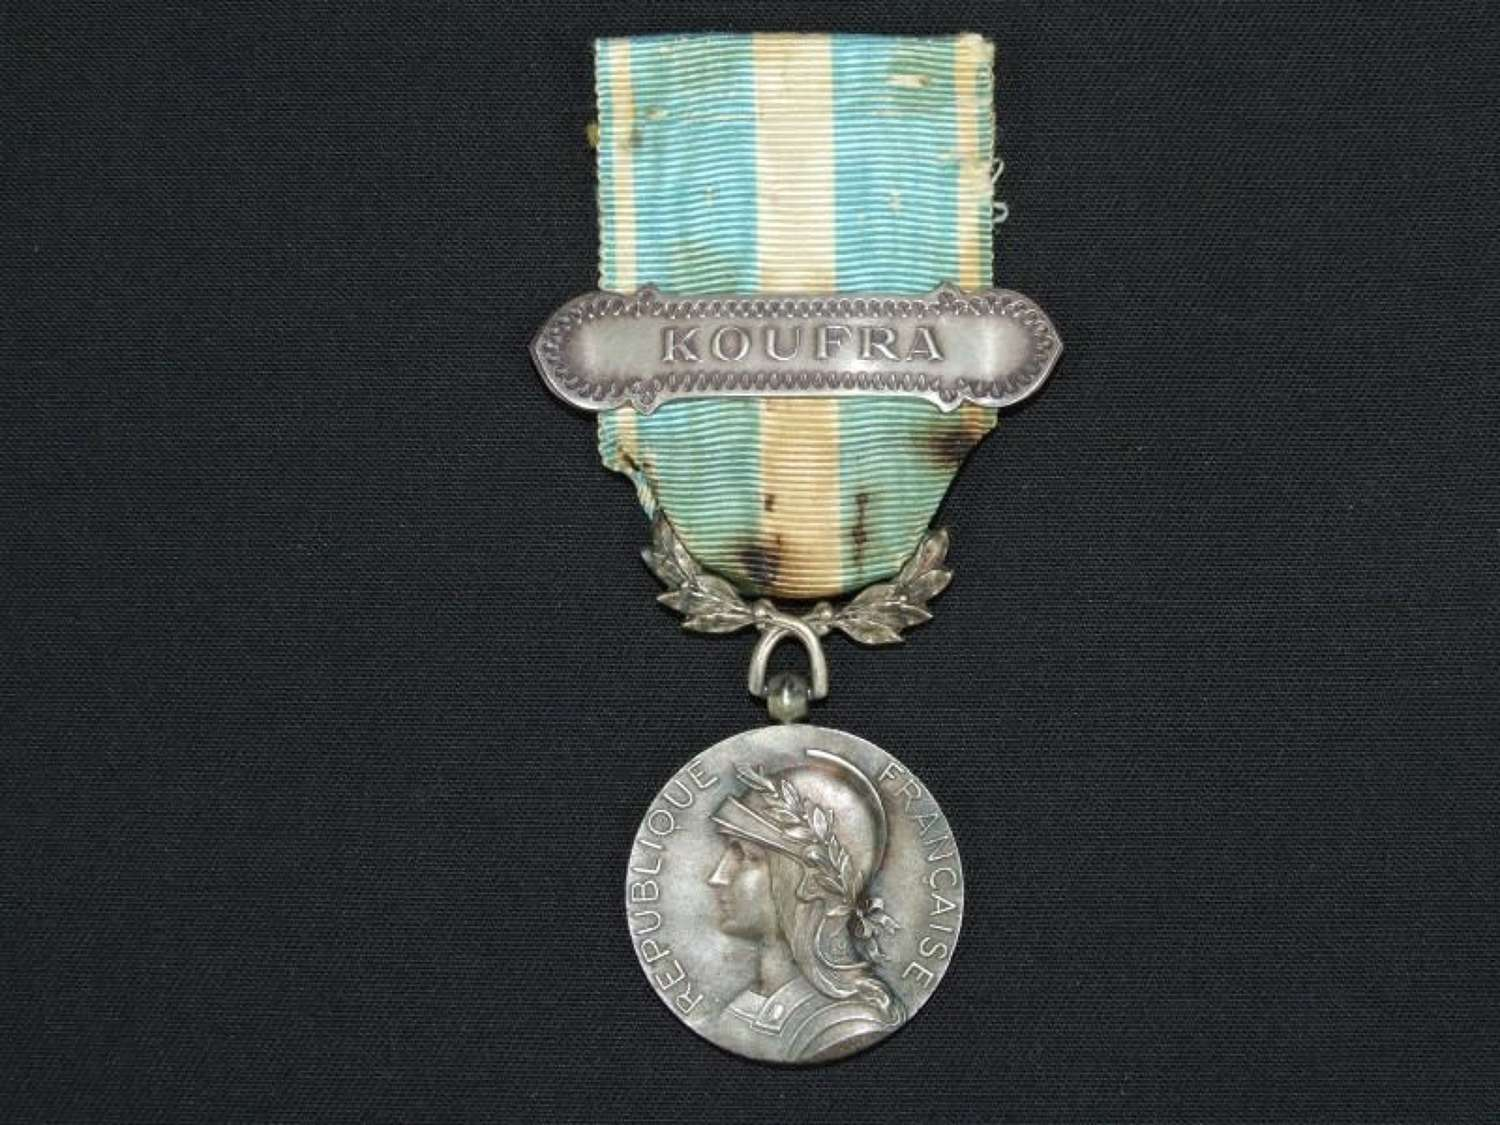 French Colonial Medal with Koufra Clasp. SAS / LDRG Interest